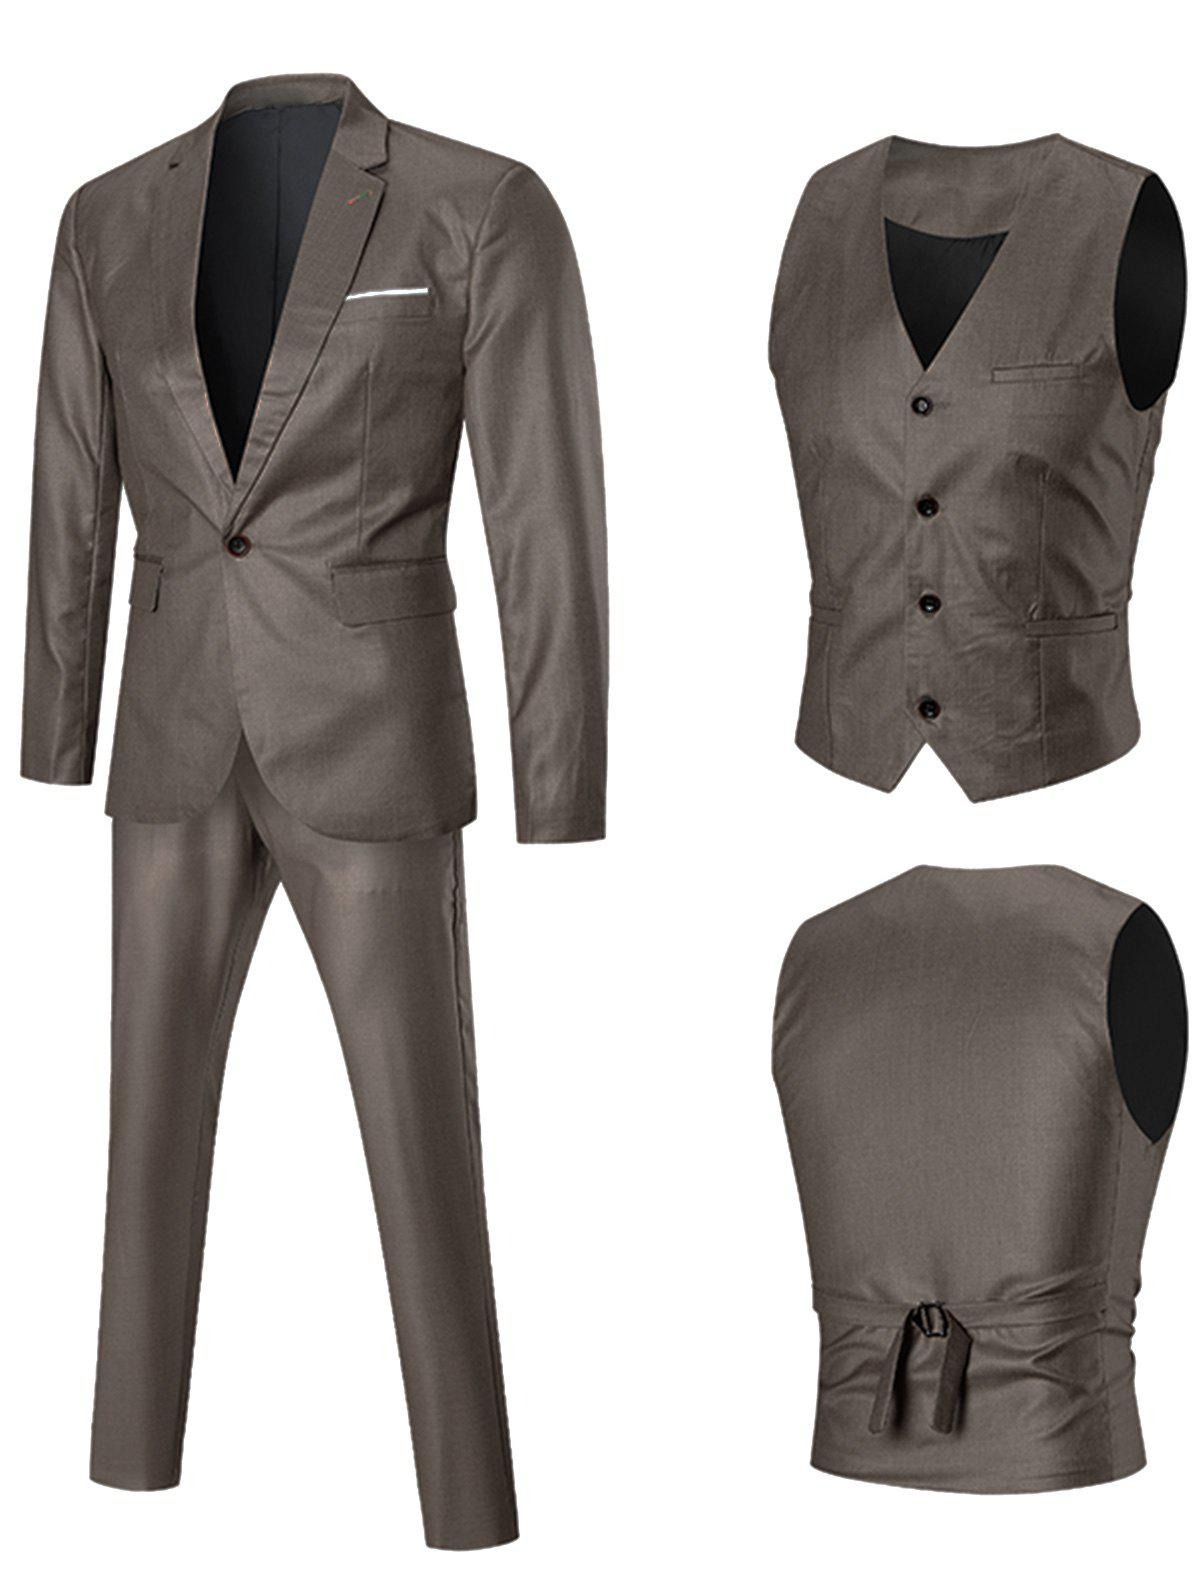 Unique Lapel One-button Three Piece Business Suit